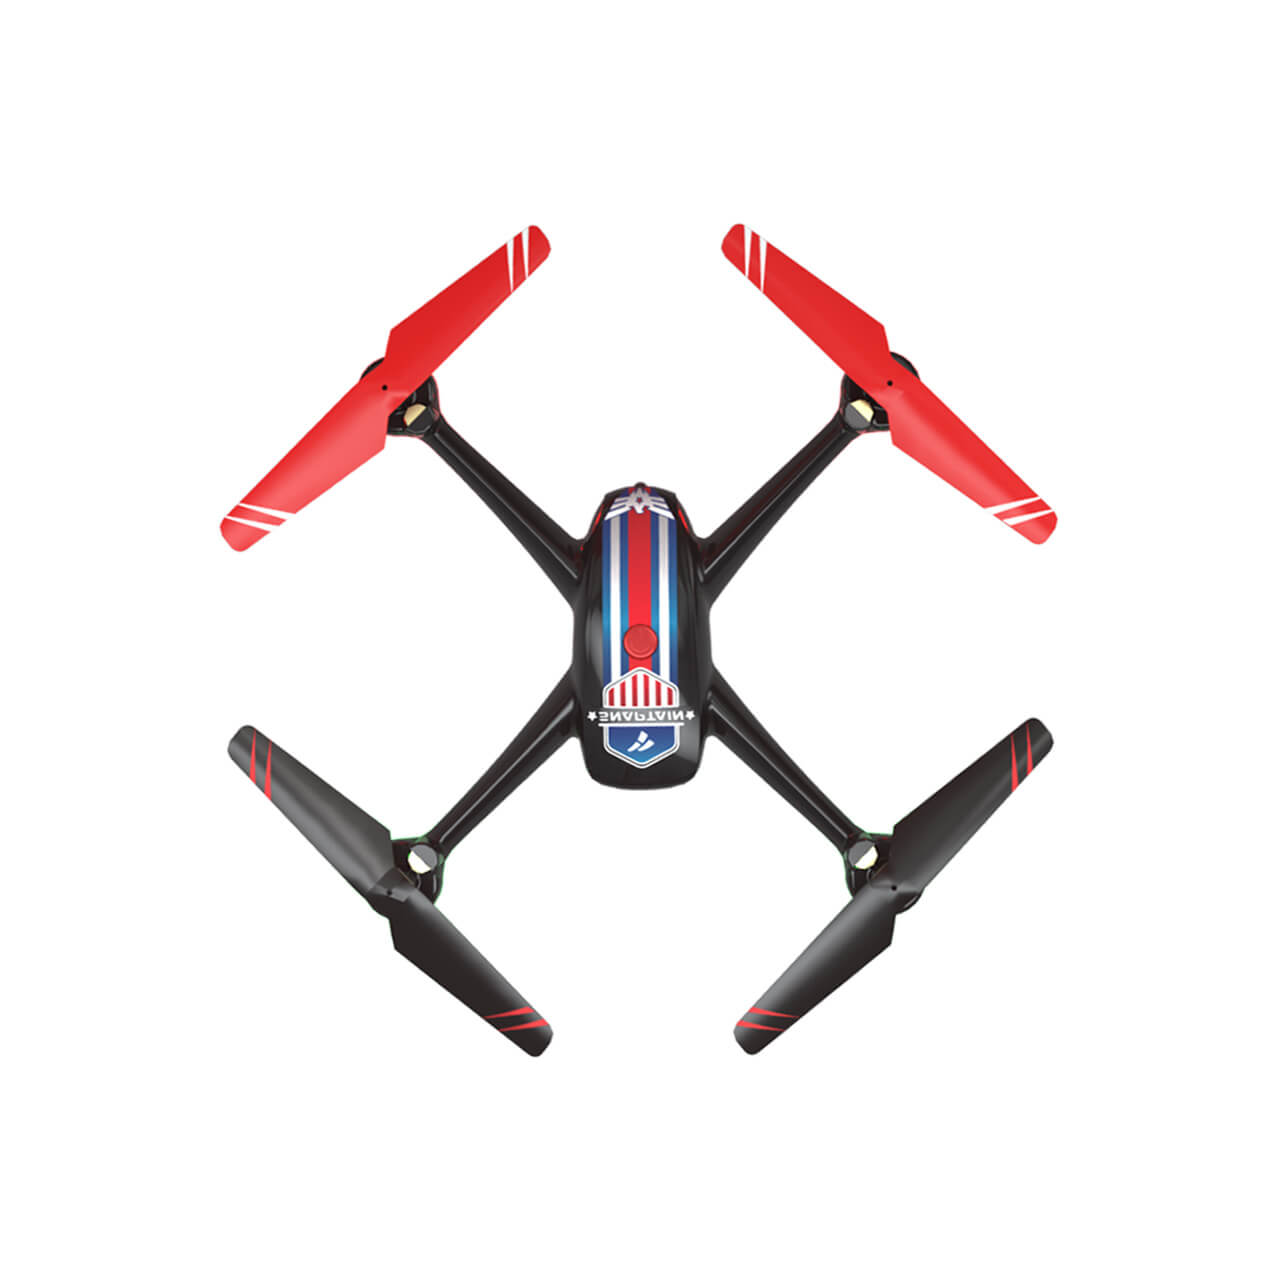 SNAPTAIN SP660 FPV RC Drone